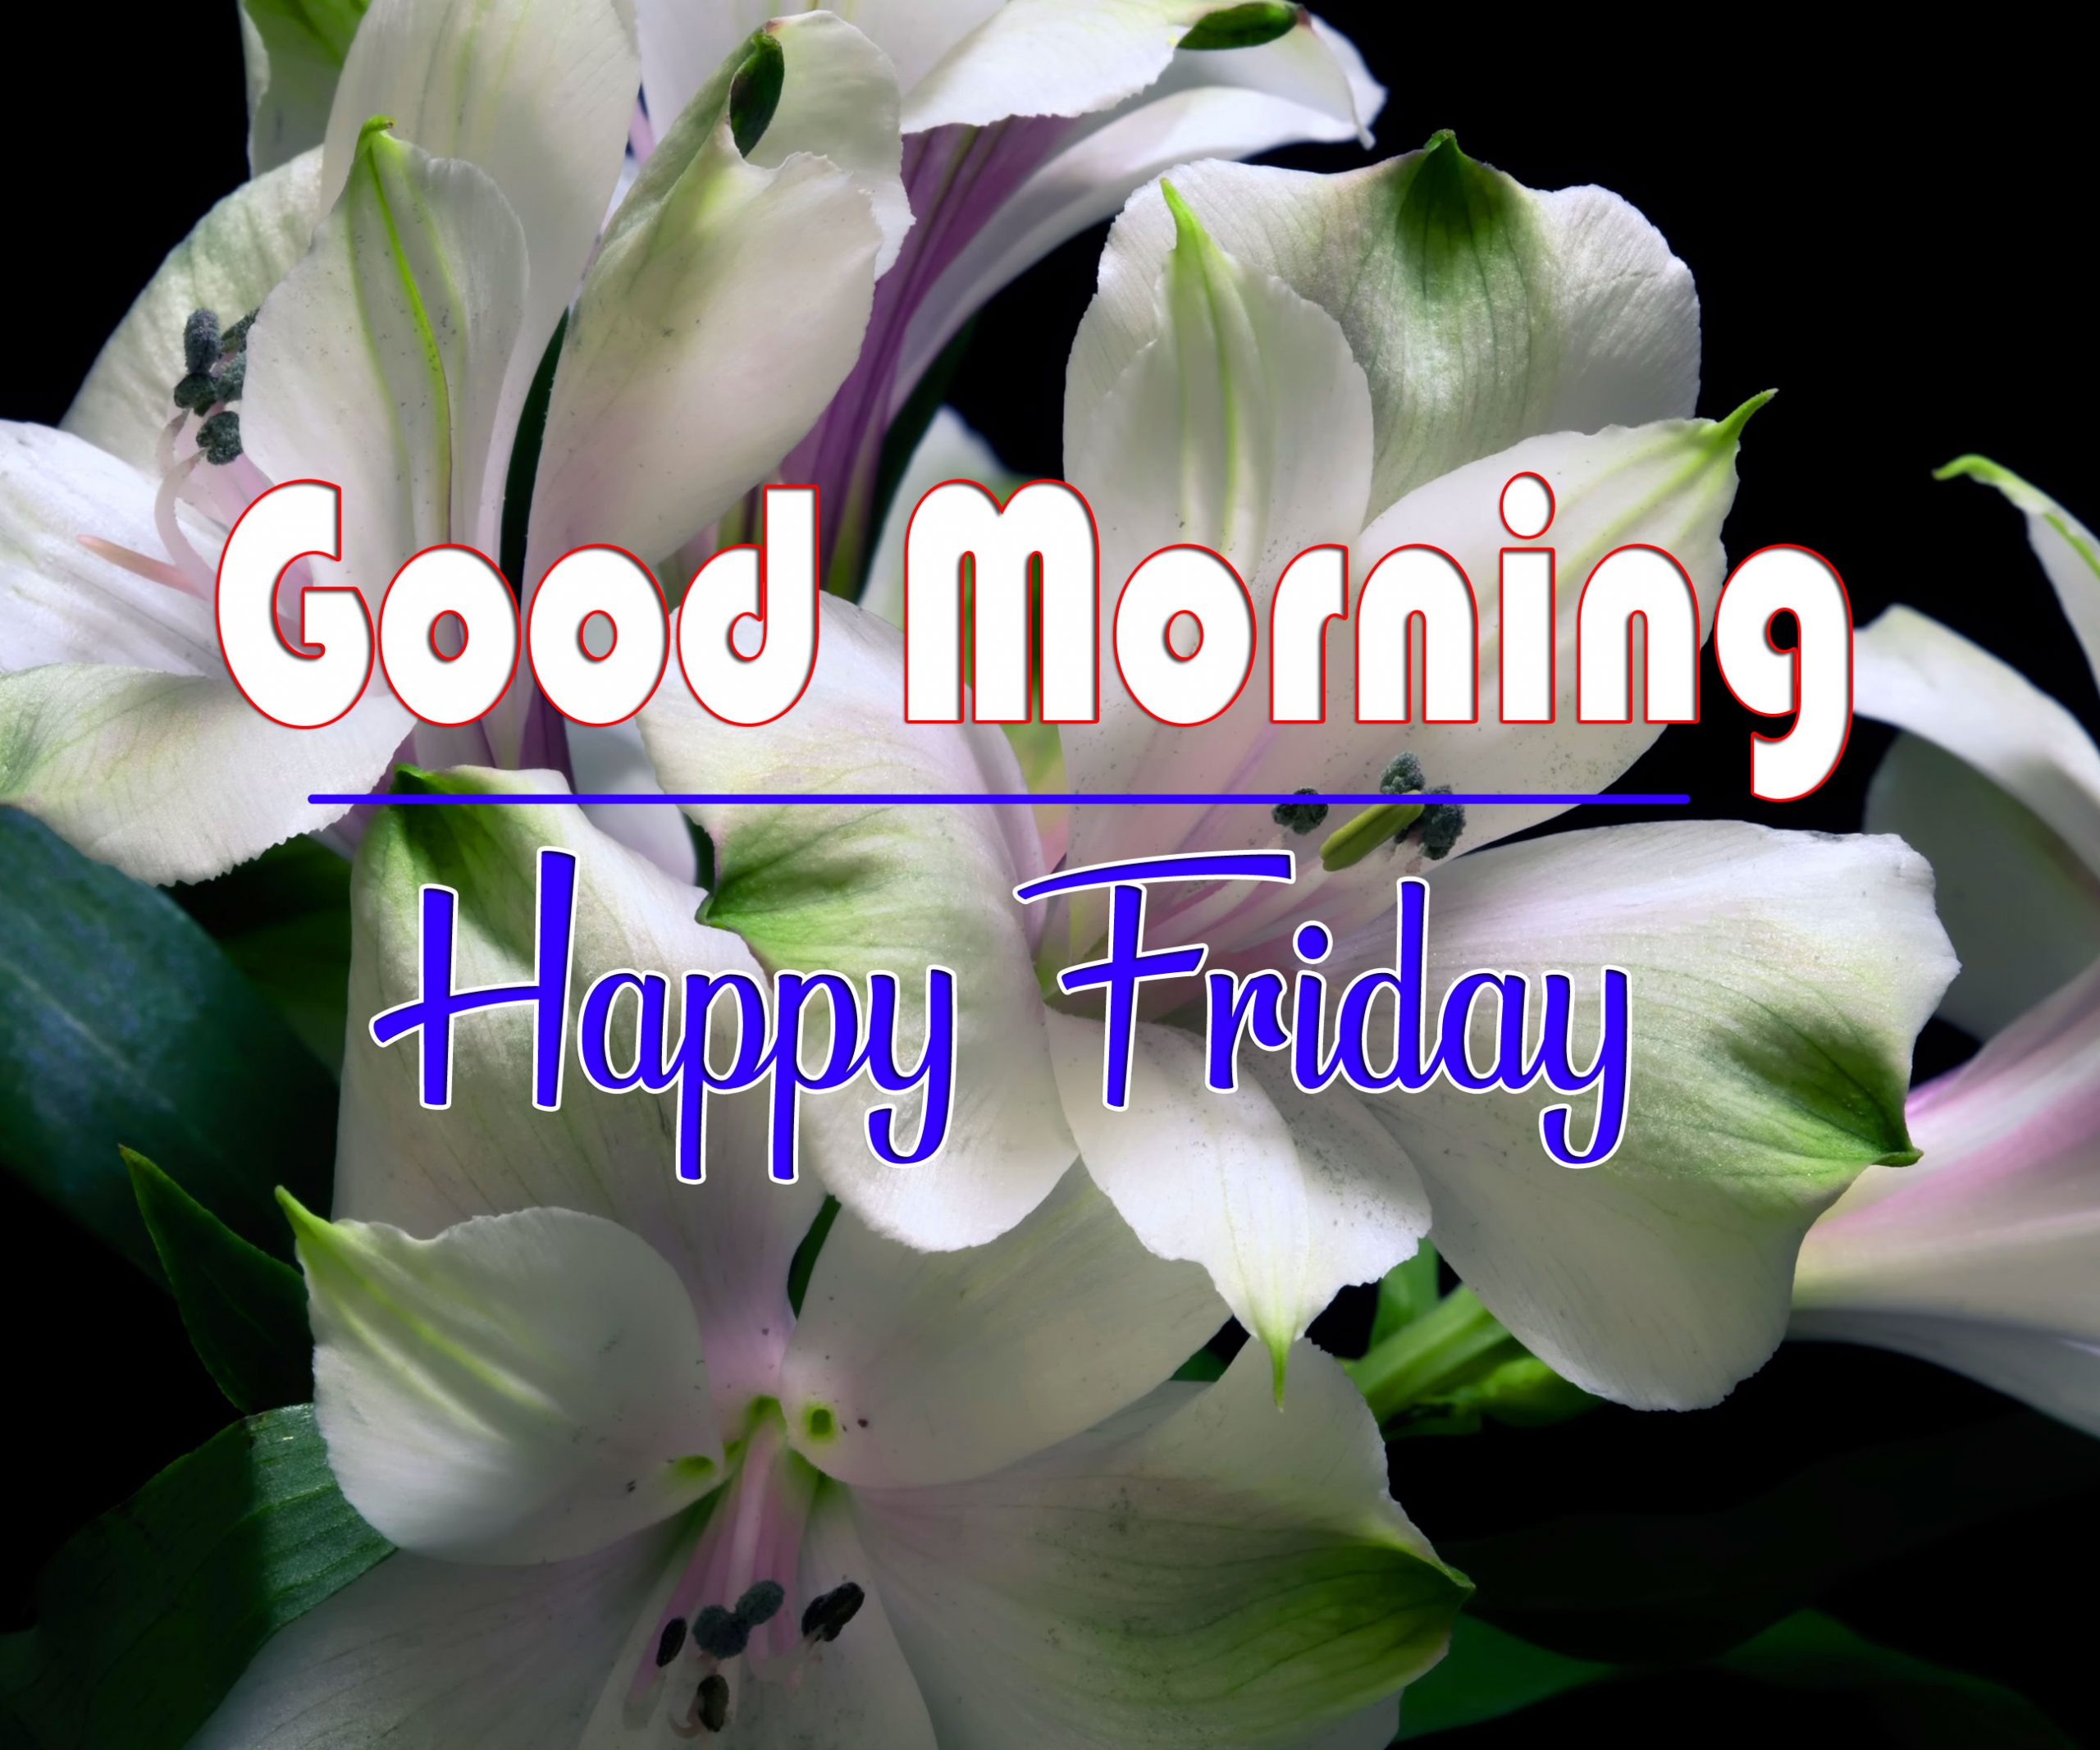 Free HD friday Good morning Wishes Images Download